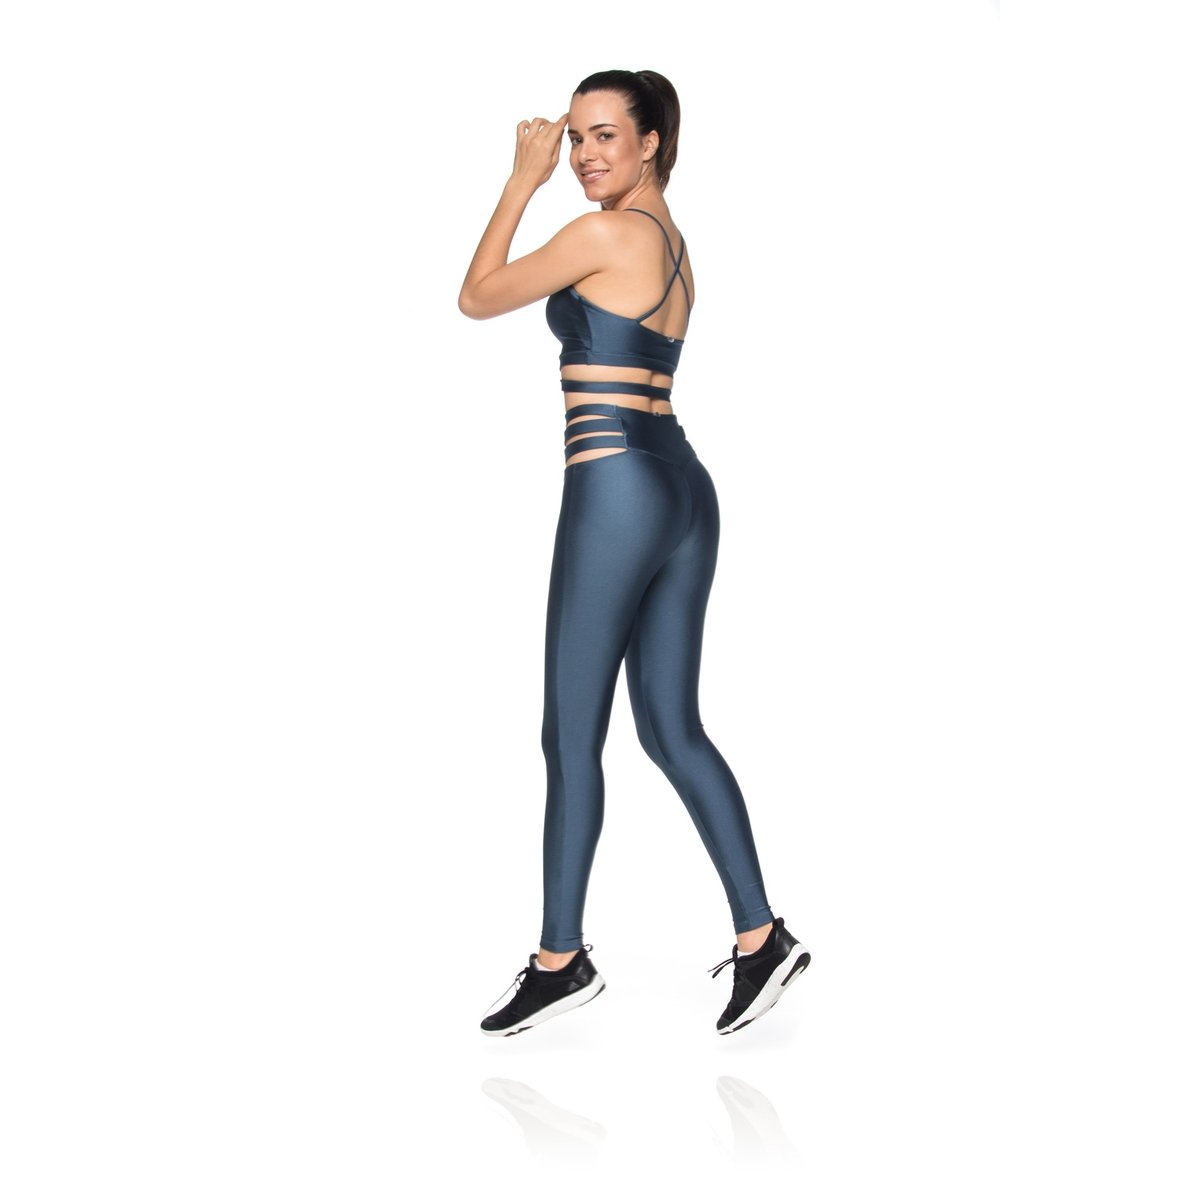 Petróleo Skin Fitness Top Strip Top Azul Fitness Bxq01YwC